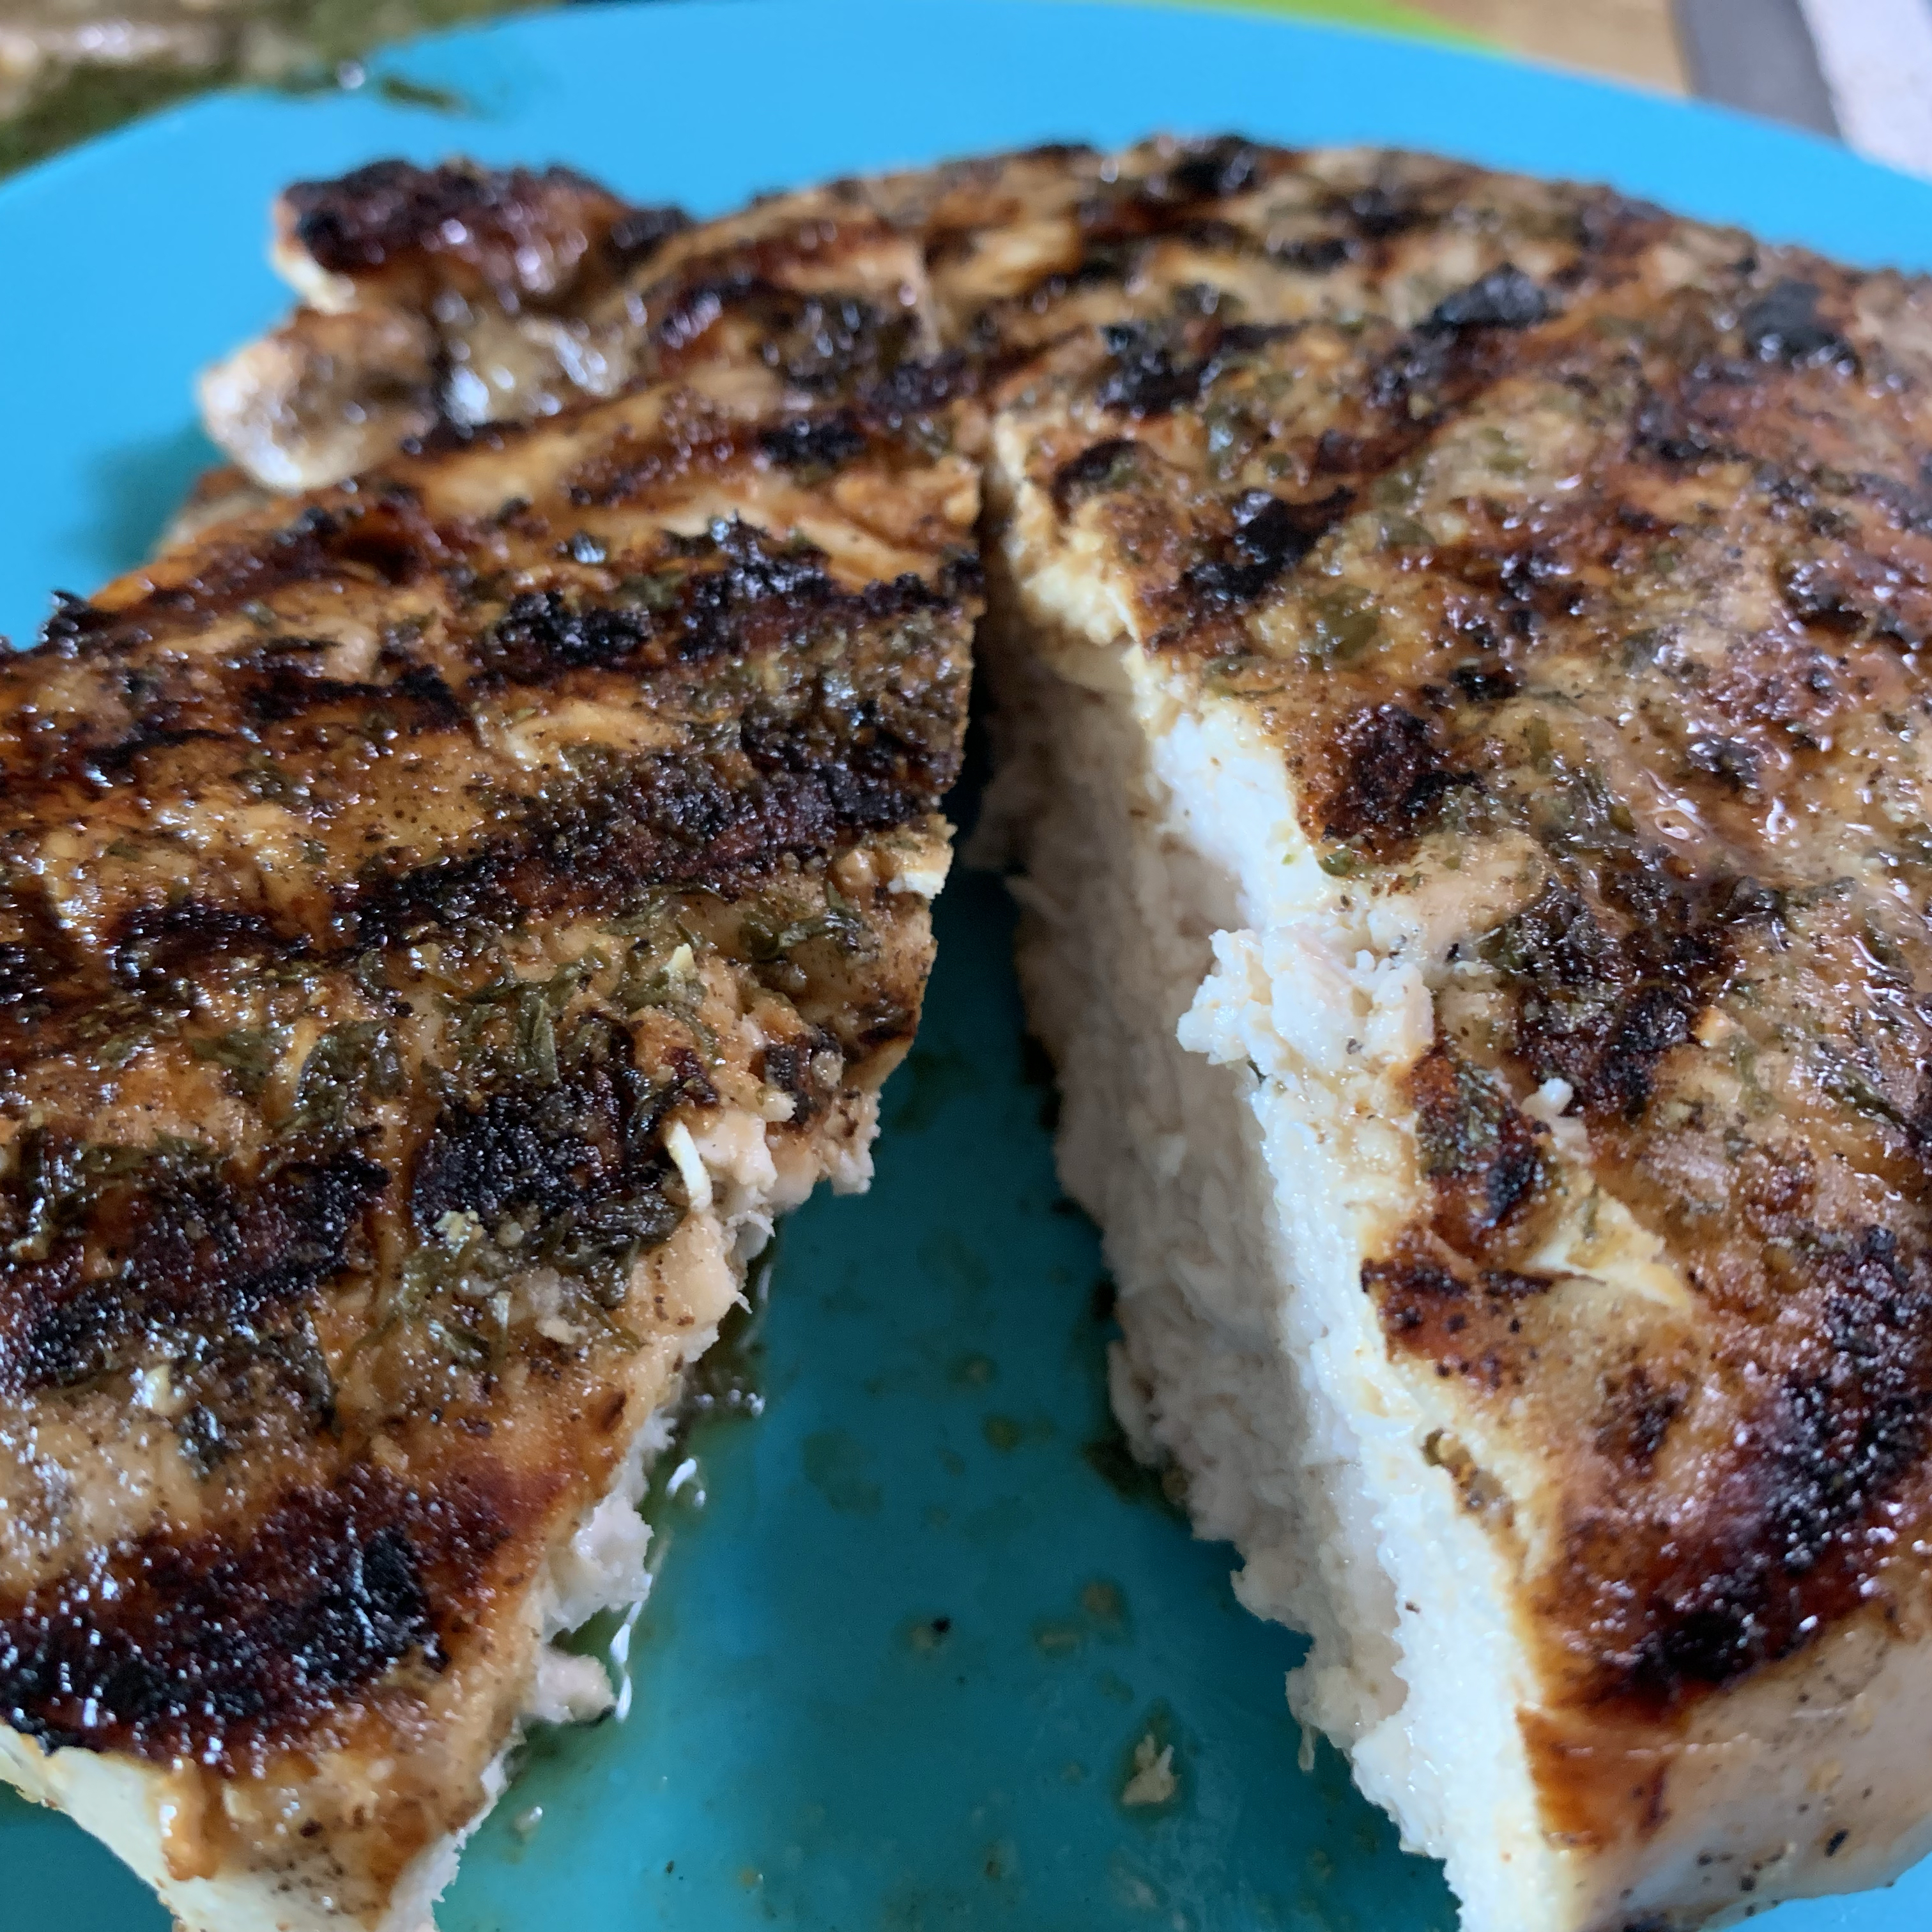 Jenny's Grilled Chicken Breasts amyzabro